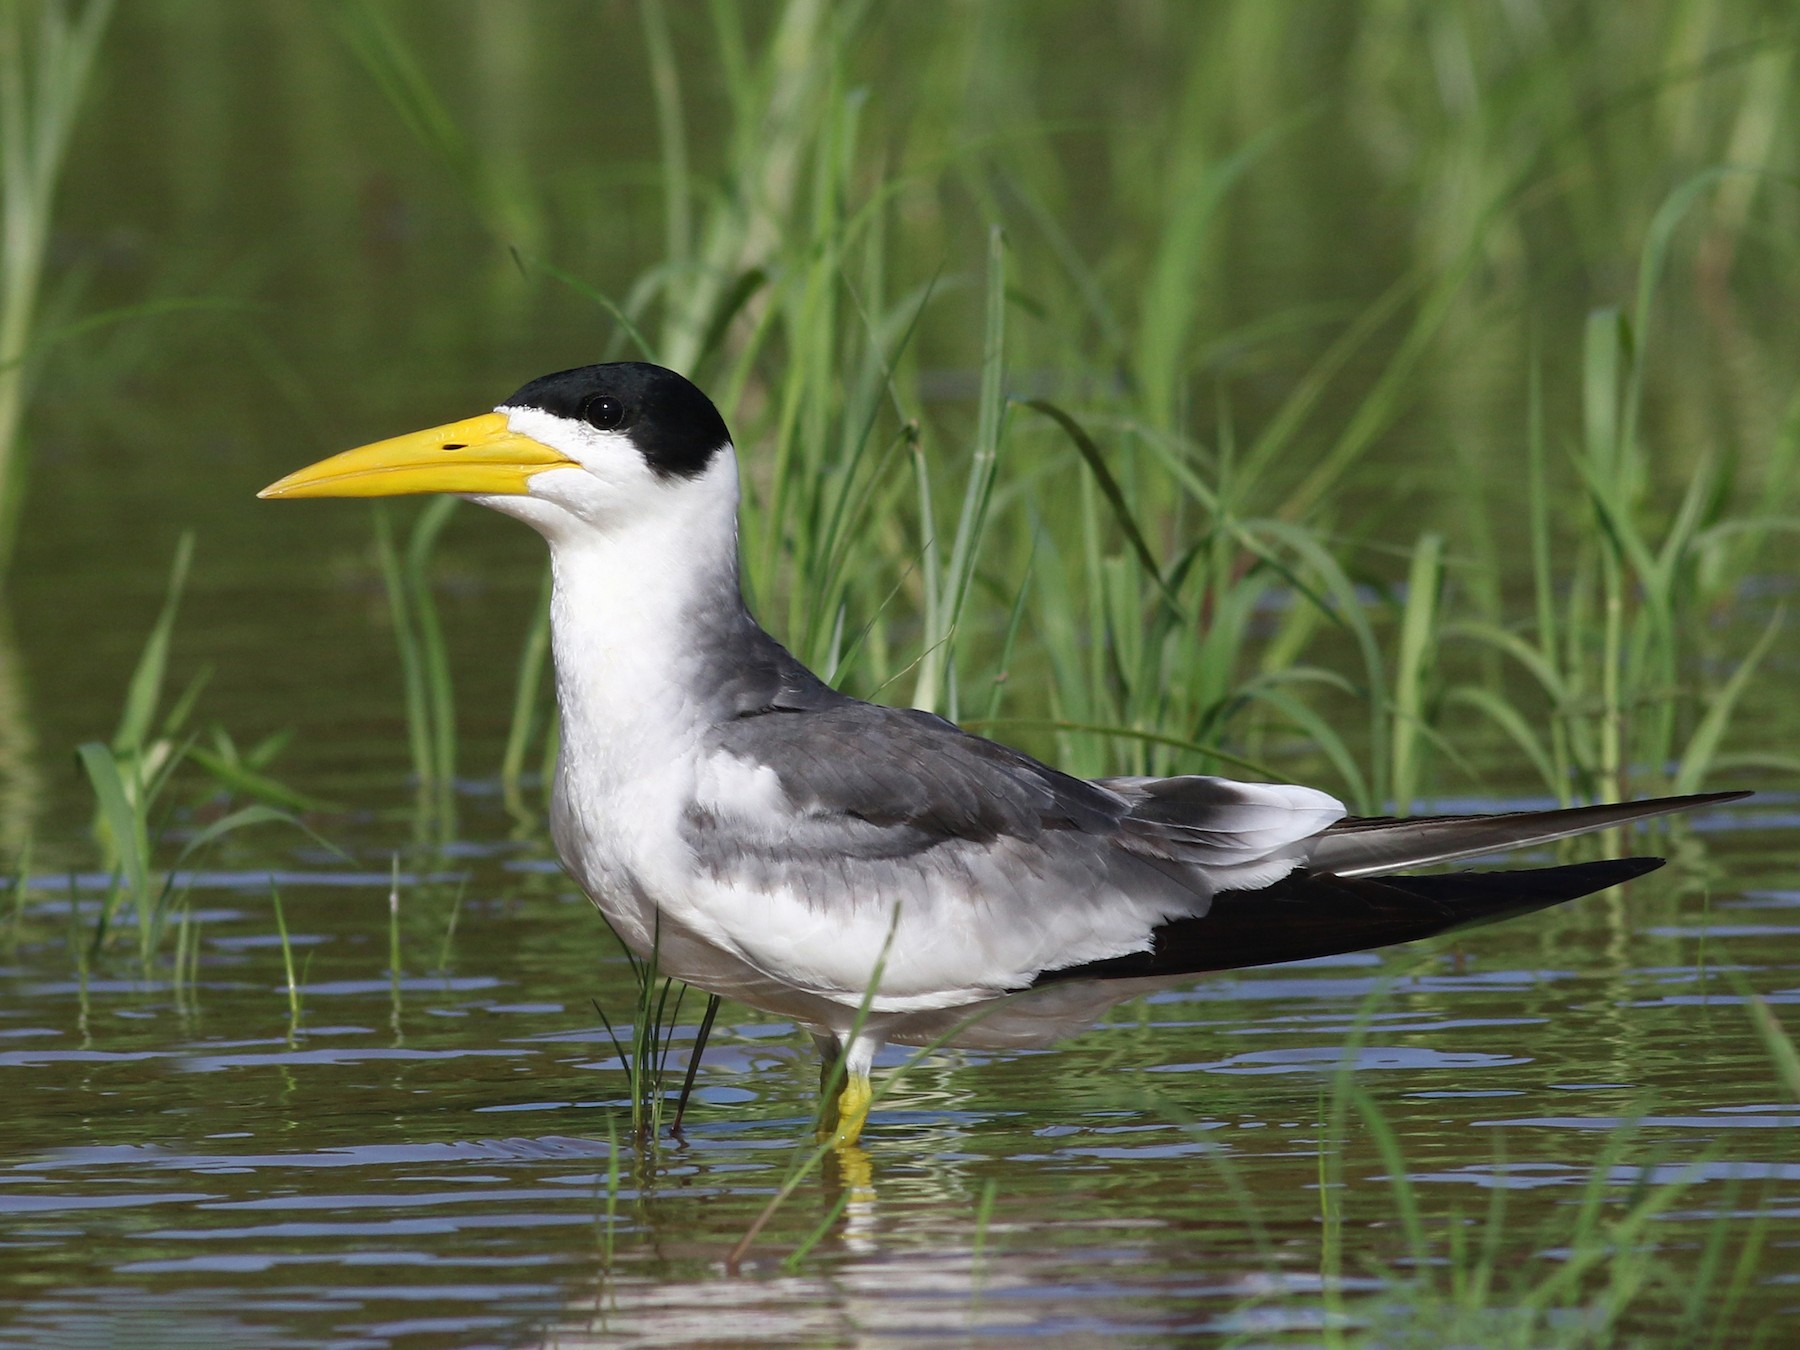 Large-billed Tern - Nick Bonomo